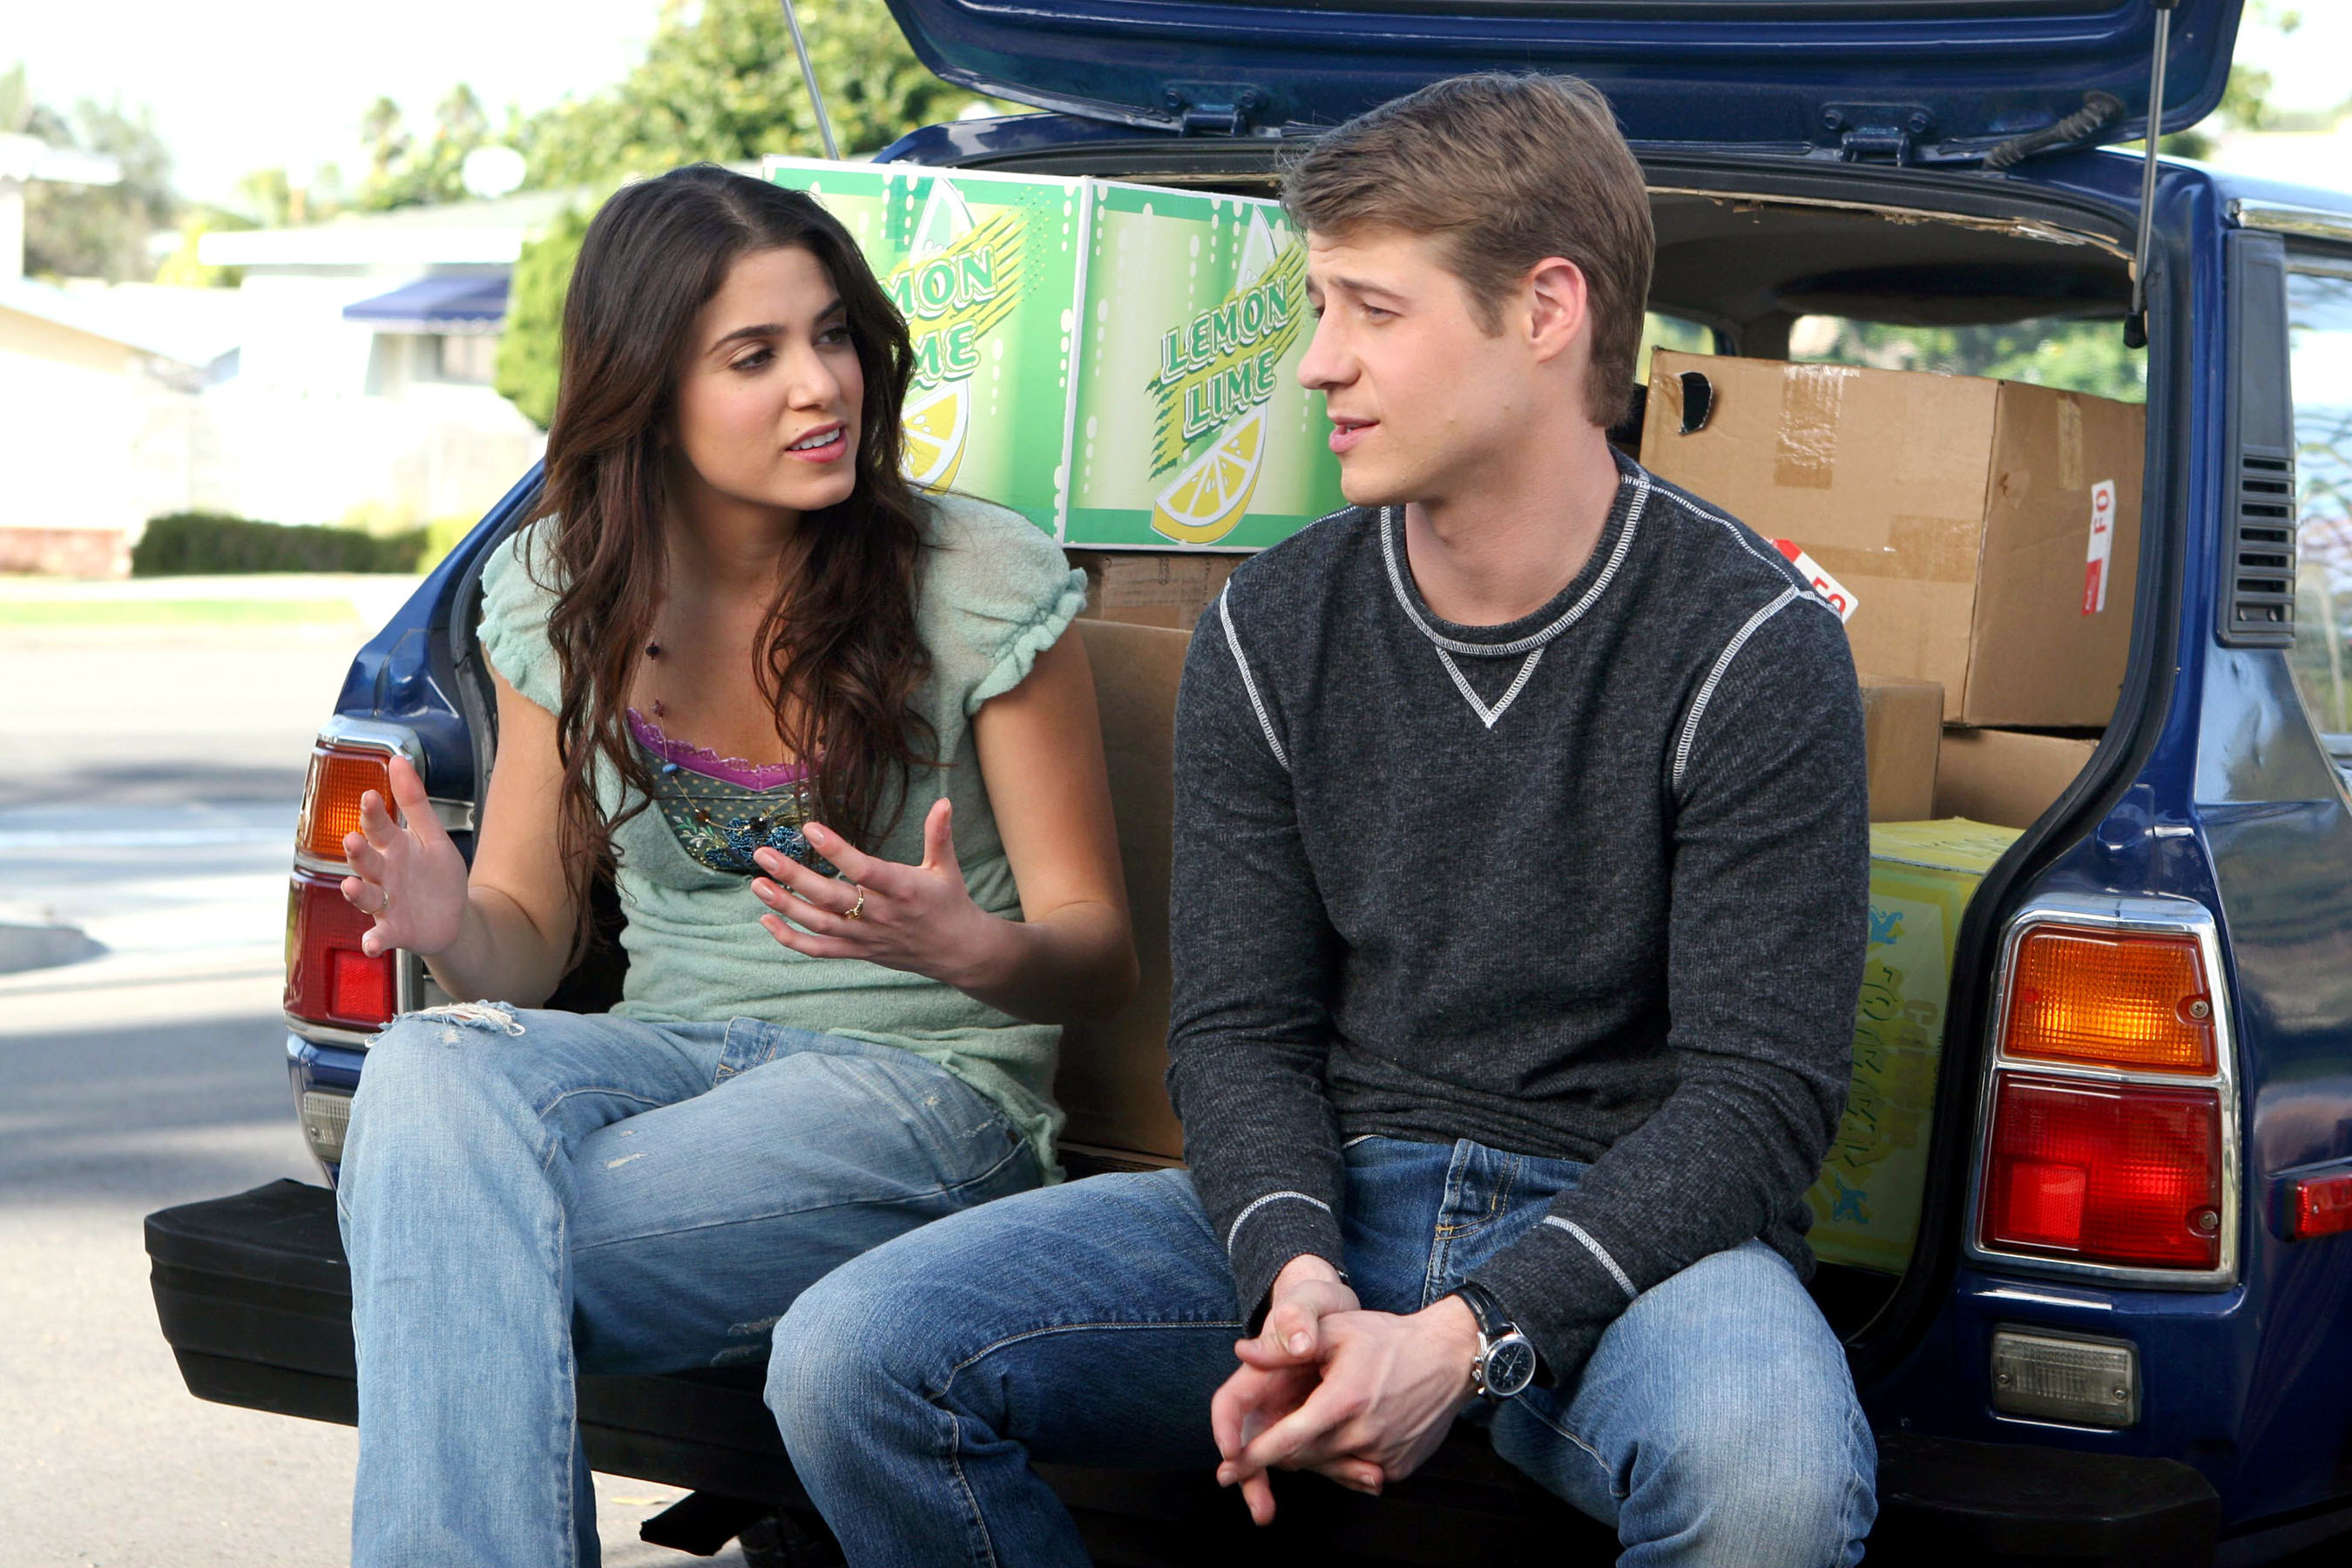 Sadie and Ryan sitting on the back of a car